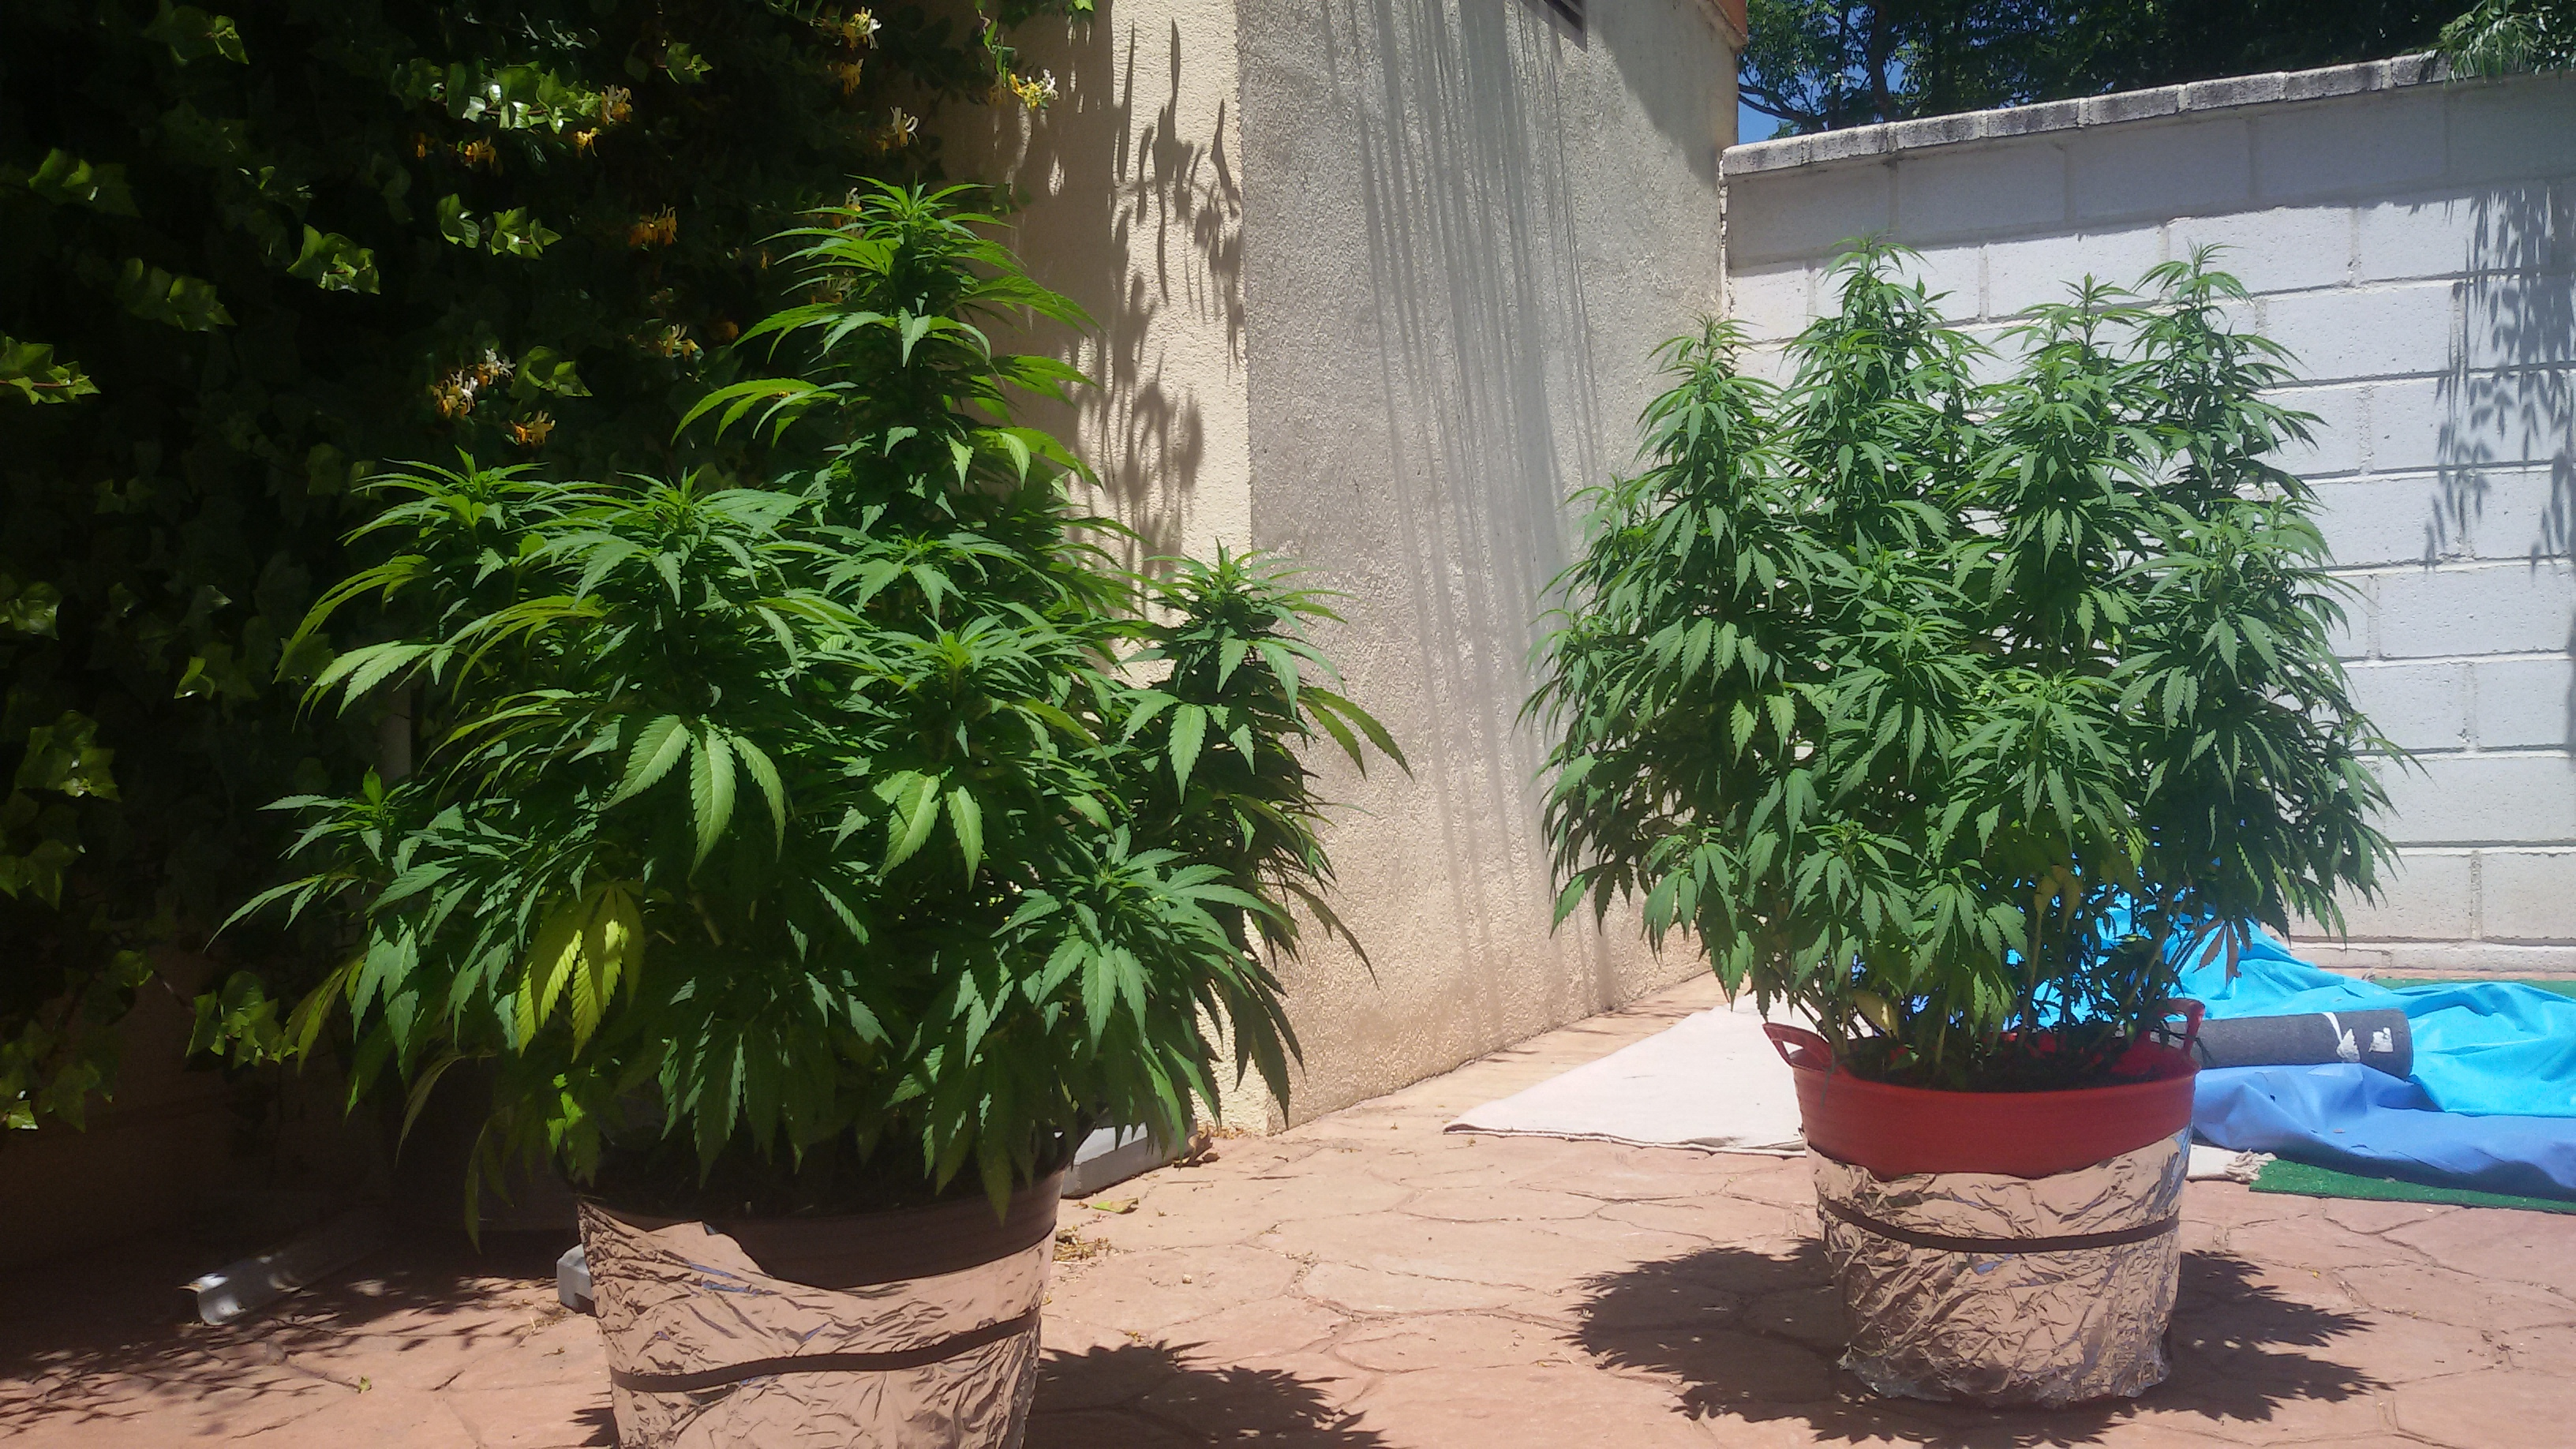 El Brujo a Latigazos ...(Sweet Seeds)+(CannaBooM)(2018) 20180705_143806